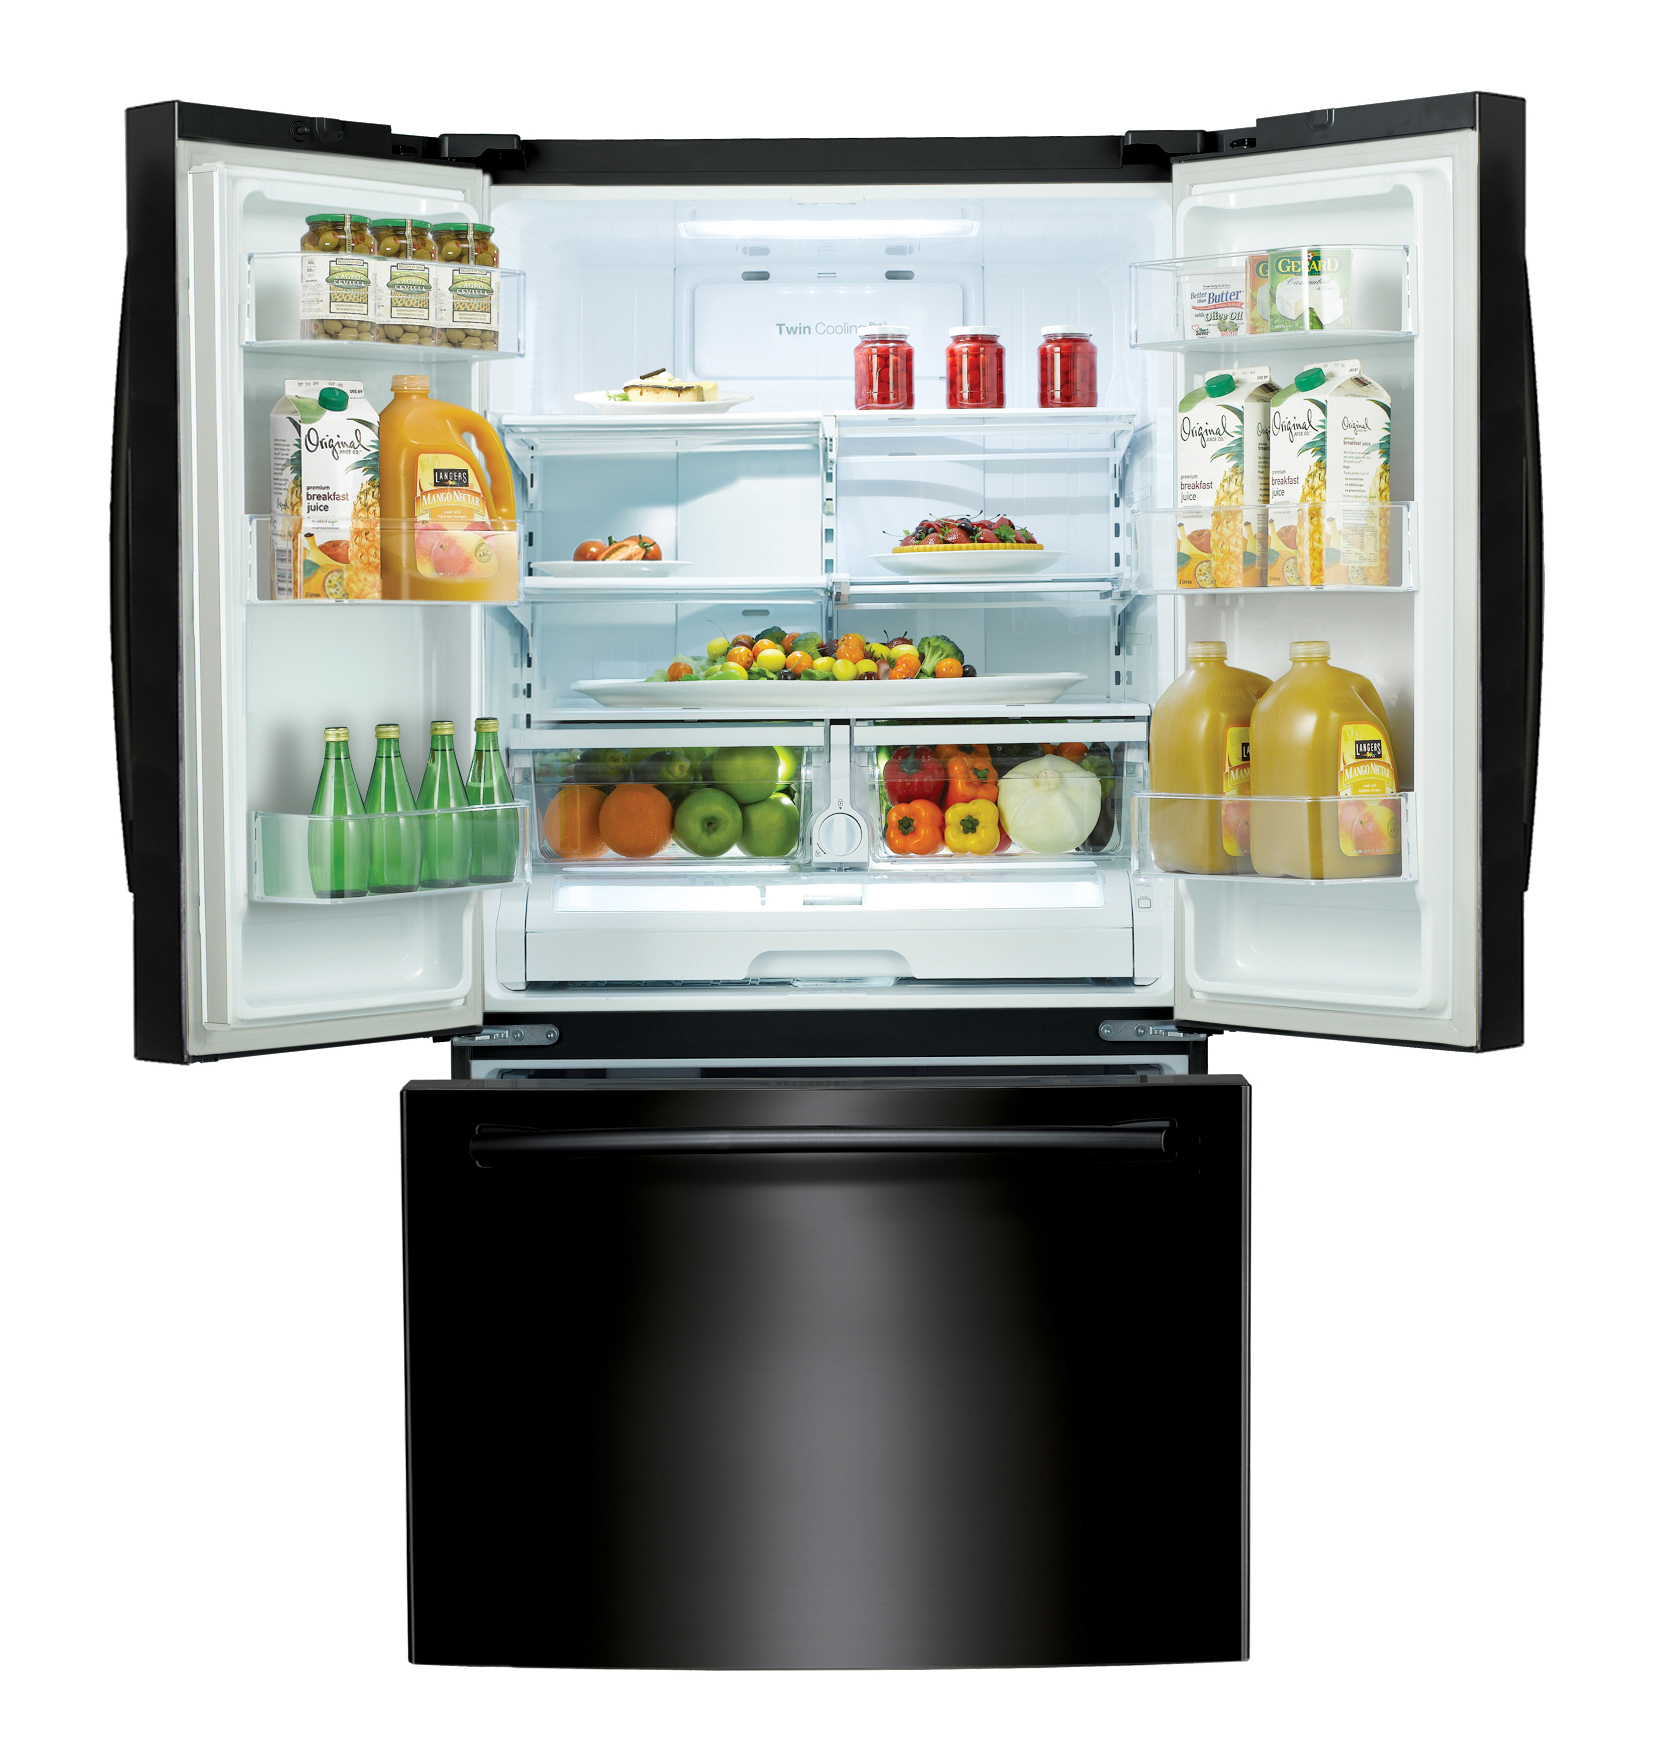 Samsung 26 cu.ft. French Door Refrigerator w/ Internal Filtered Water Dispenser - Black